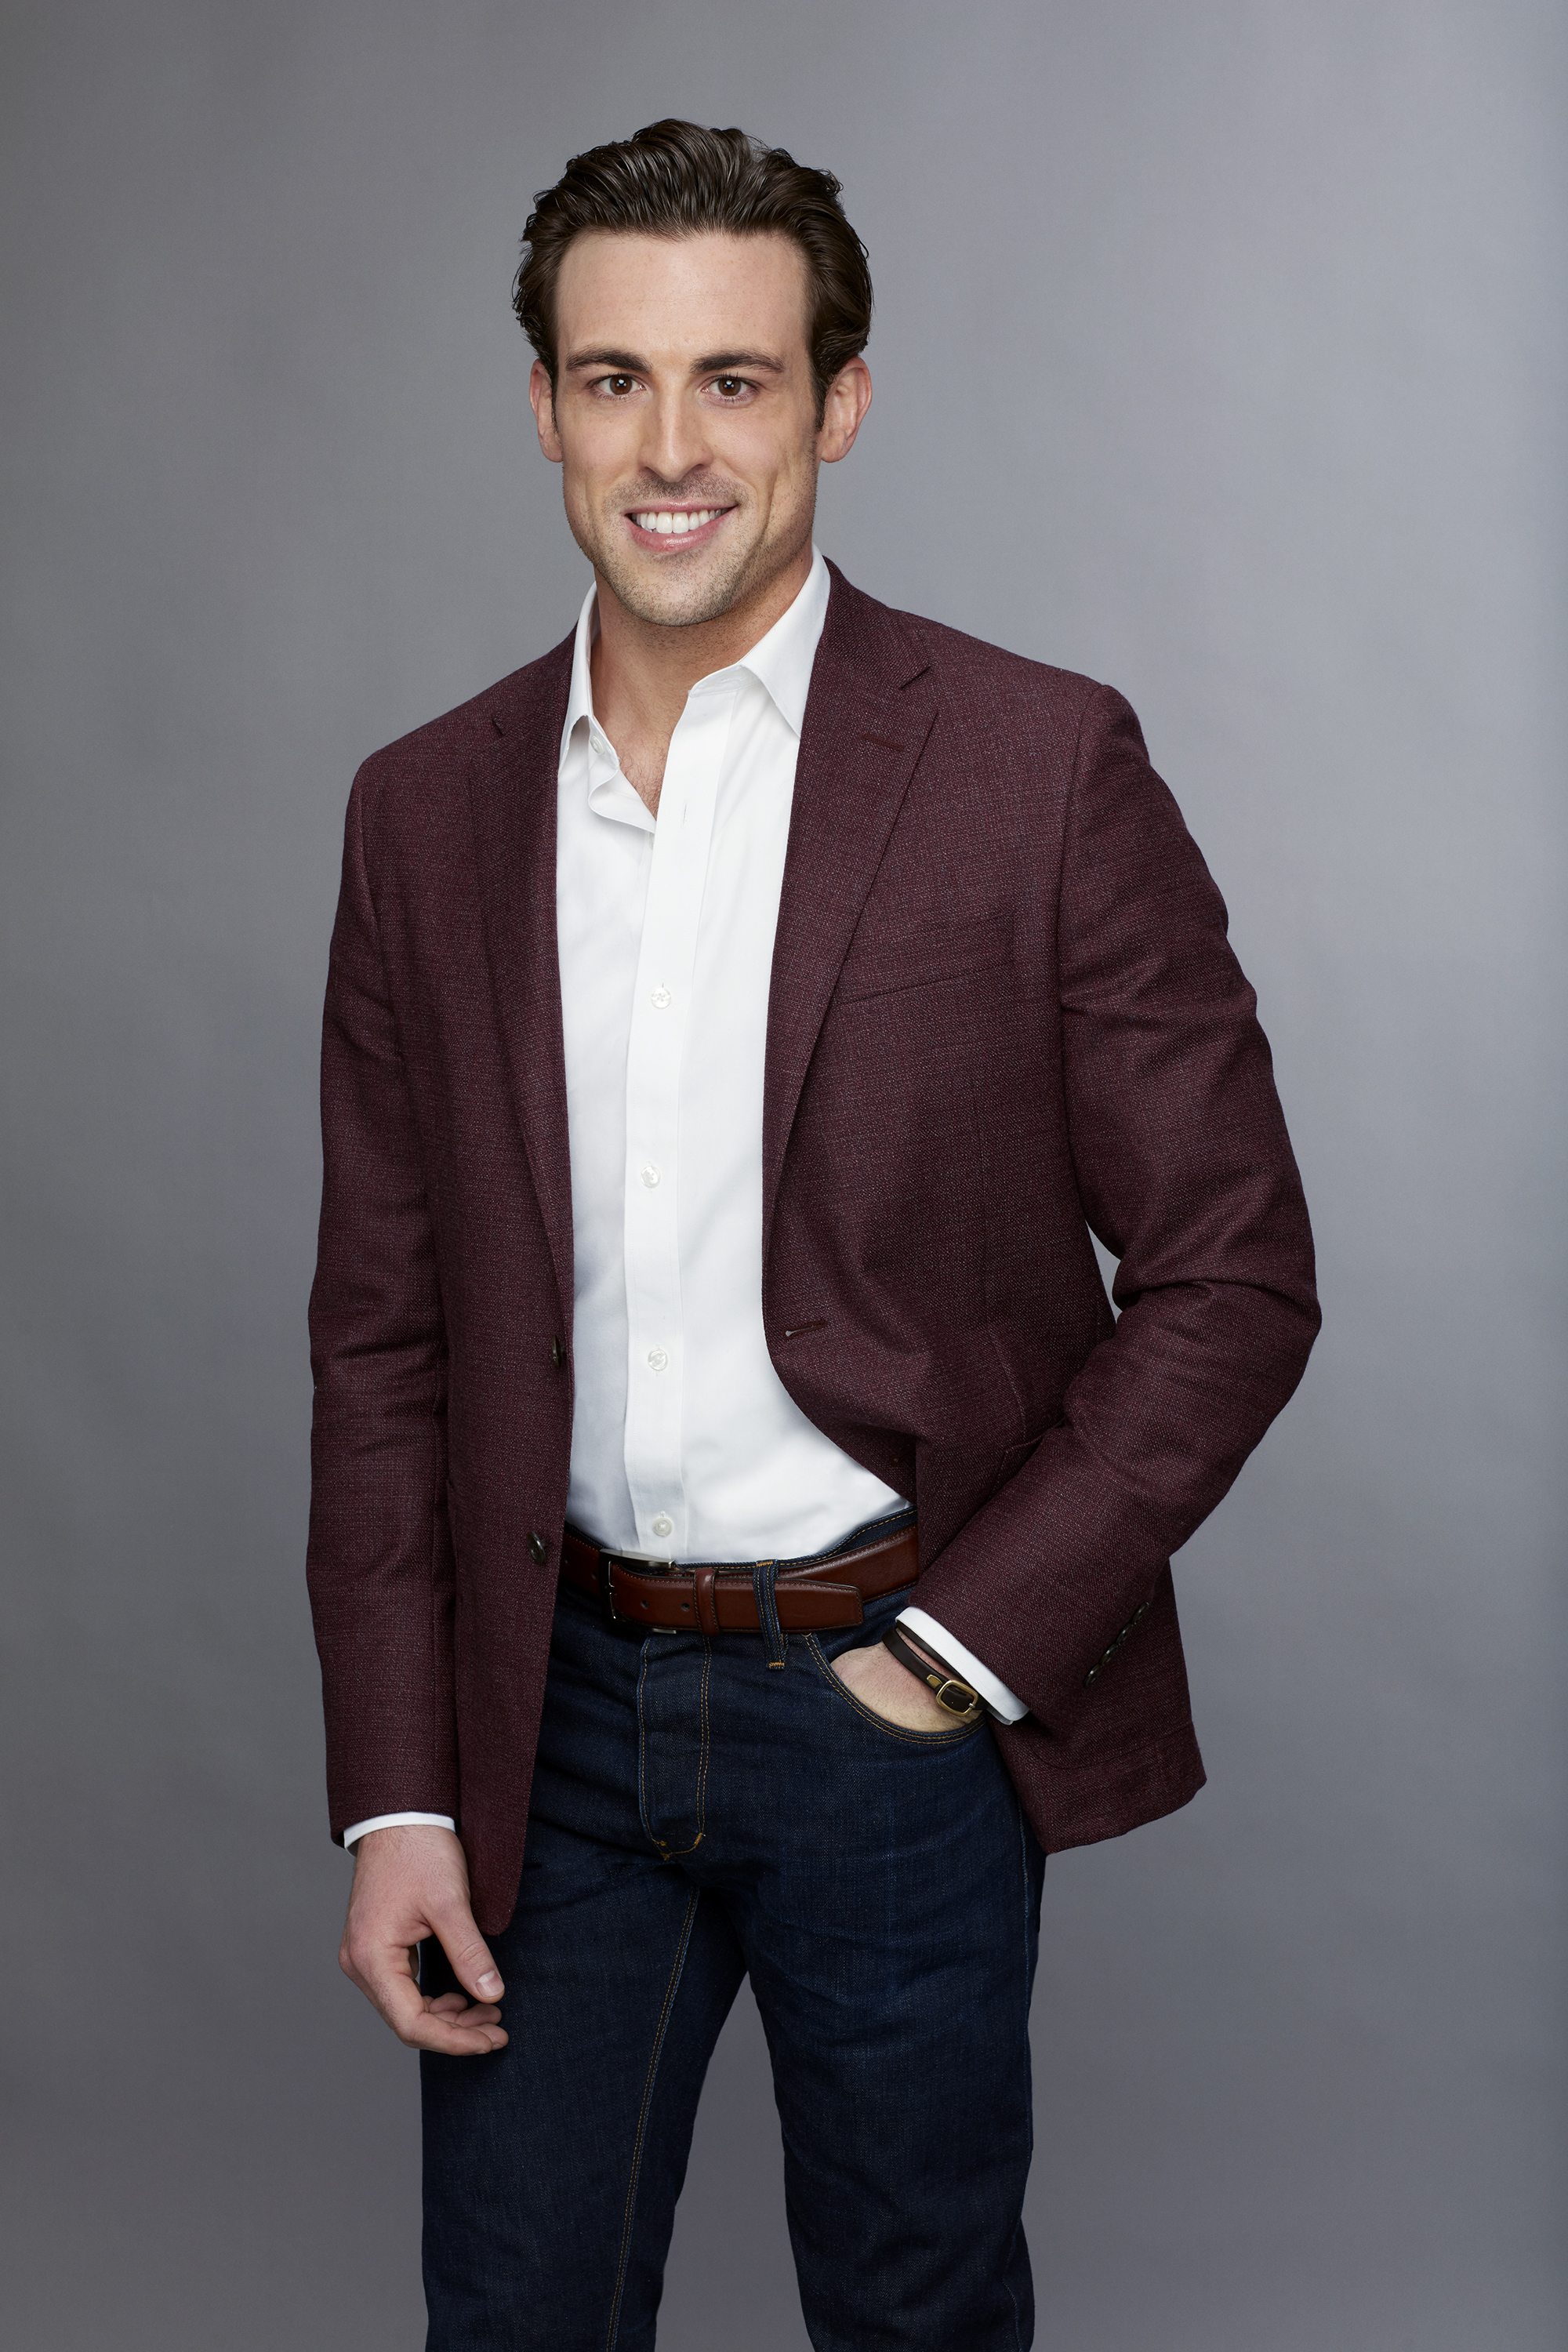 Jake, kicked off, becca kufrin, bios 2018, season 14 contestant, who went home on the bachelorette last night, tonight